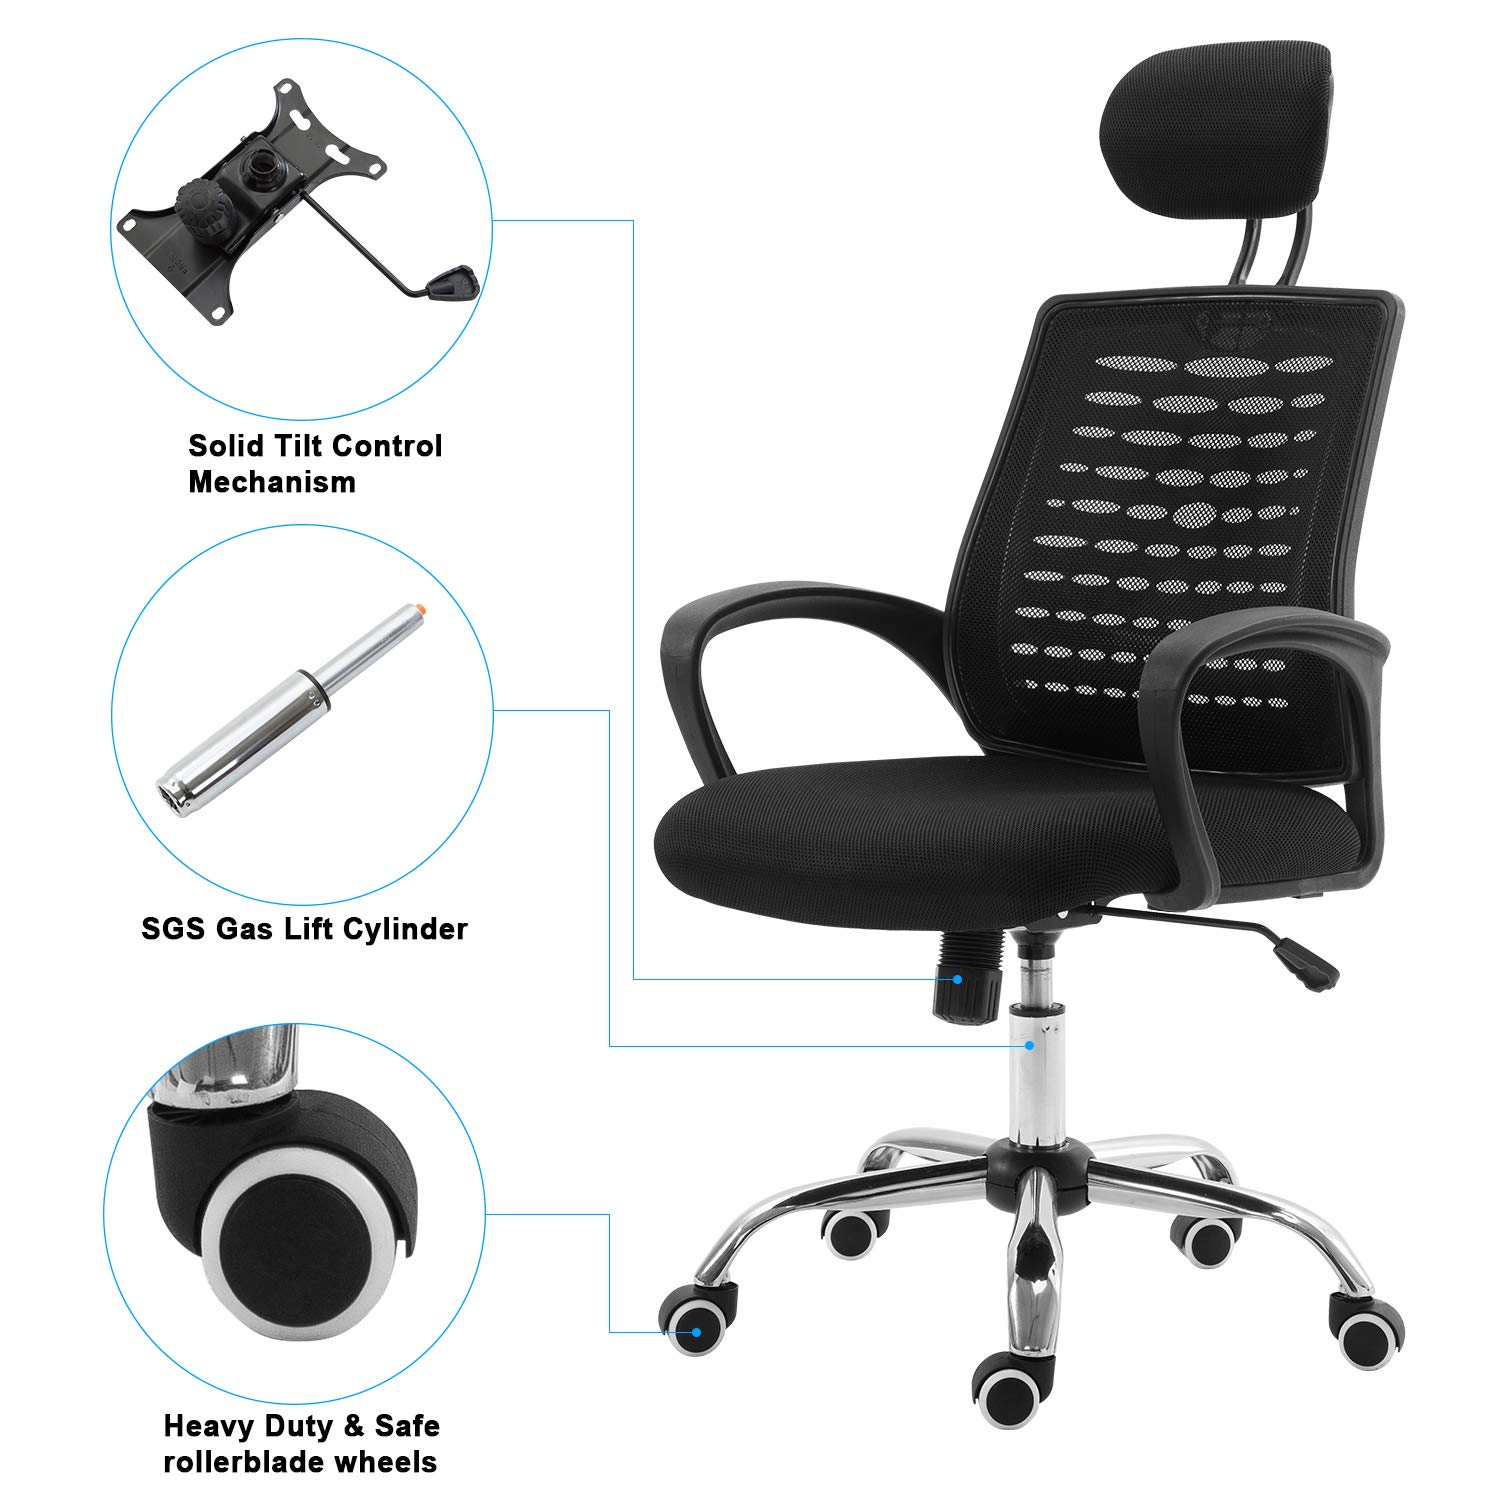 Ergonomic Mesh Office Chair, Office Task Chair with High Back Support Adjustable Headrests, Great Task Desk Executive Chair Ergonomic Computer Task Chair for Desk Home Office-Black